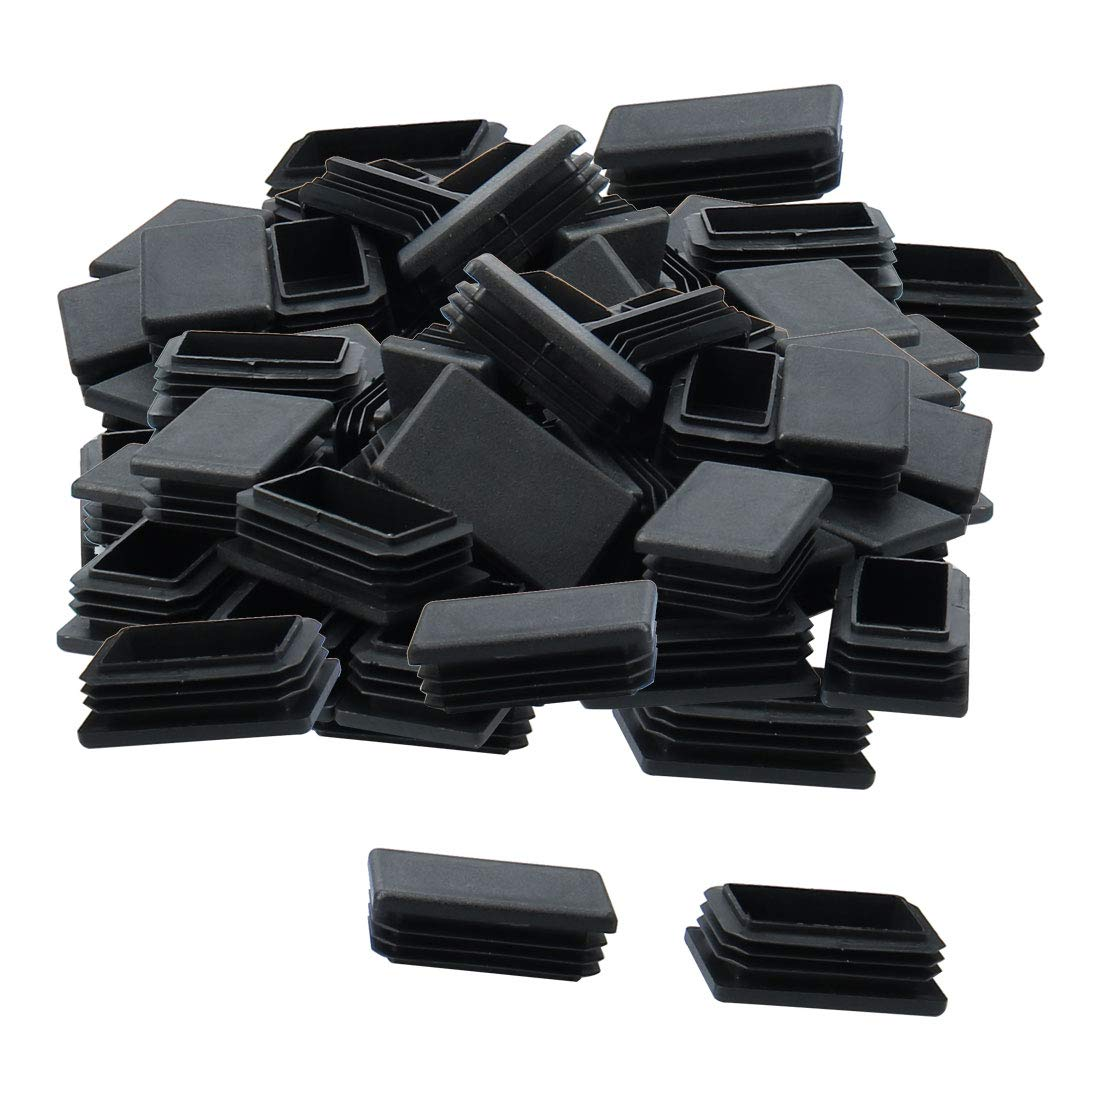 uxcell 60pcs 50 x 30mm Plastic Rectangle Ribbed Tube Insert End Cover Pad Furniture Chair Table Desk Feet Floor Protector